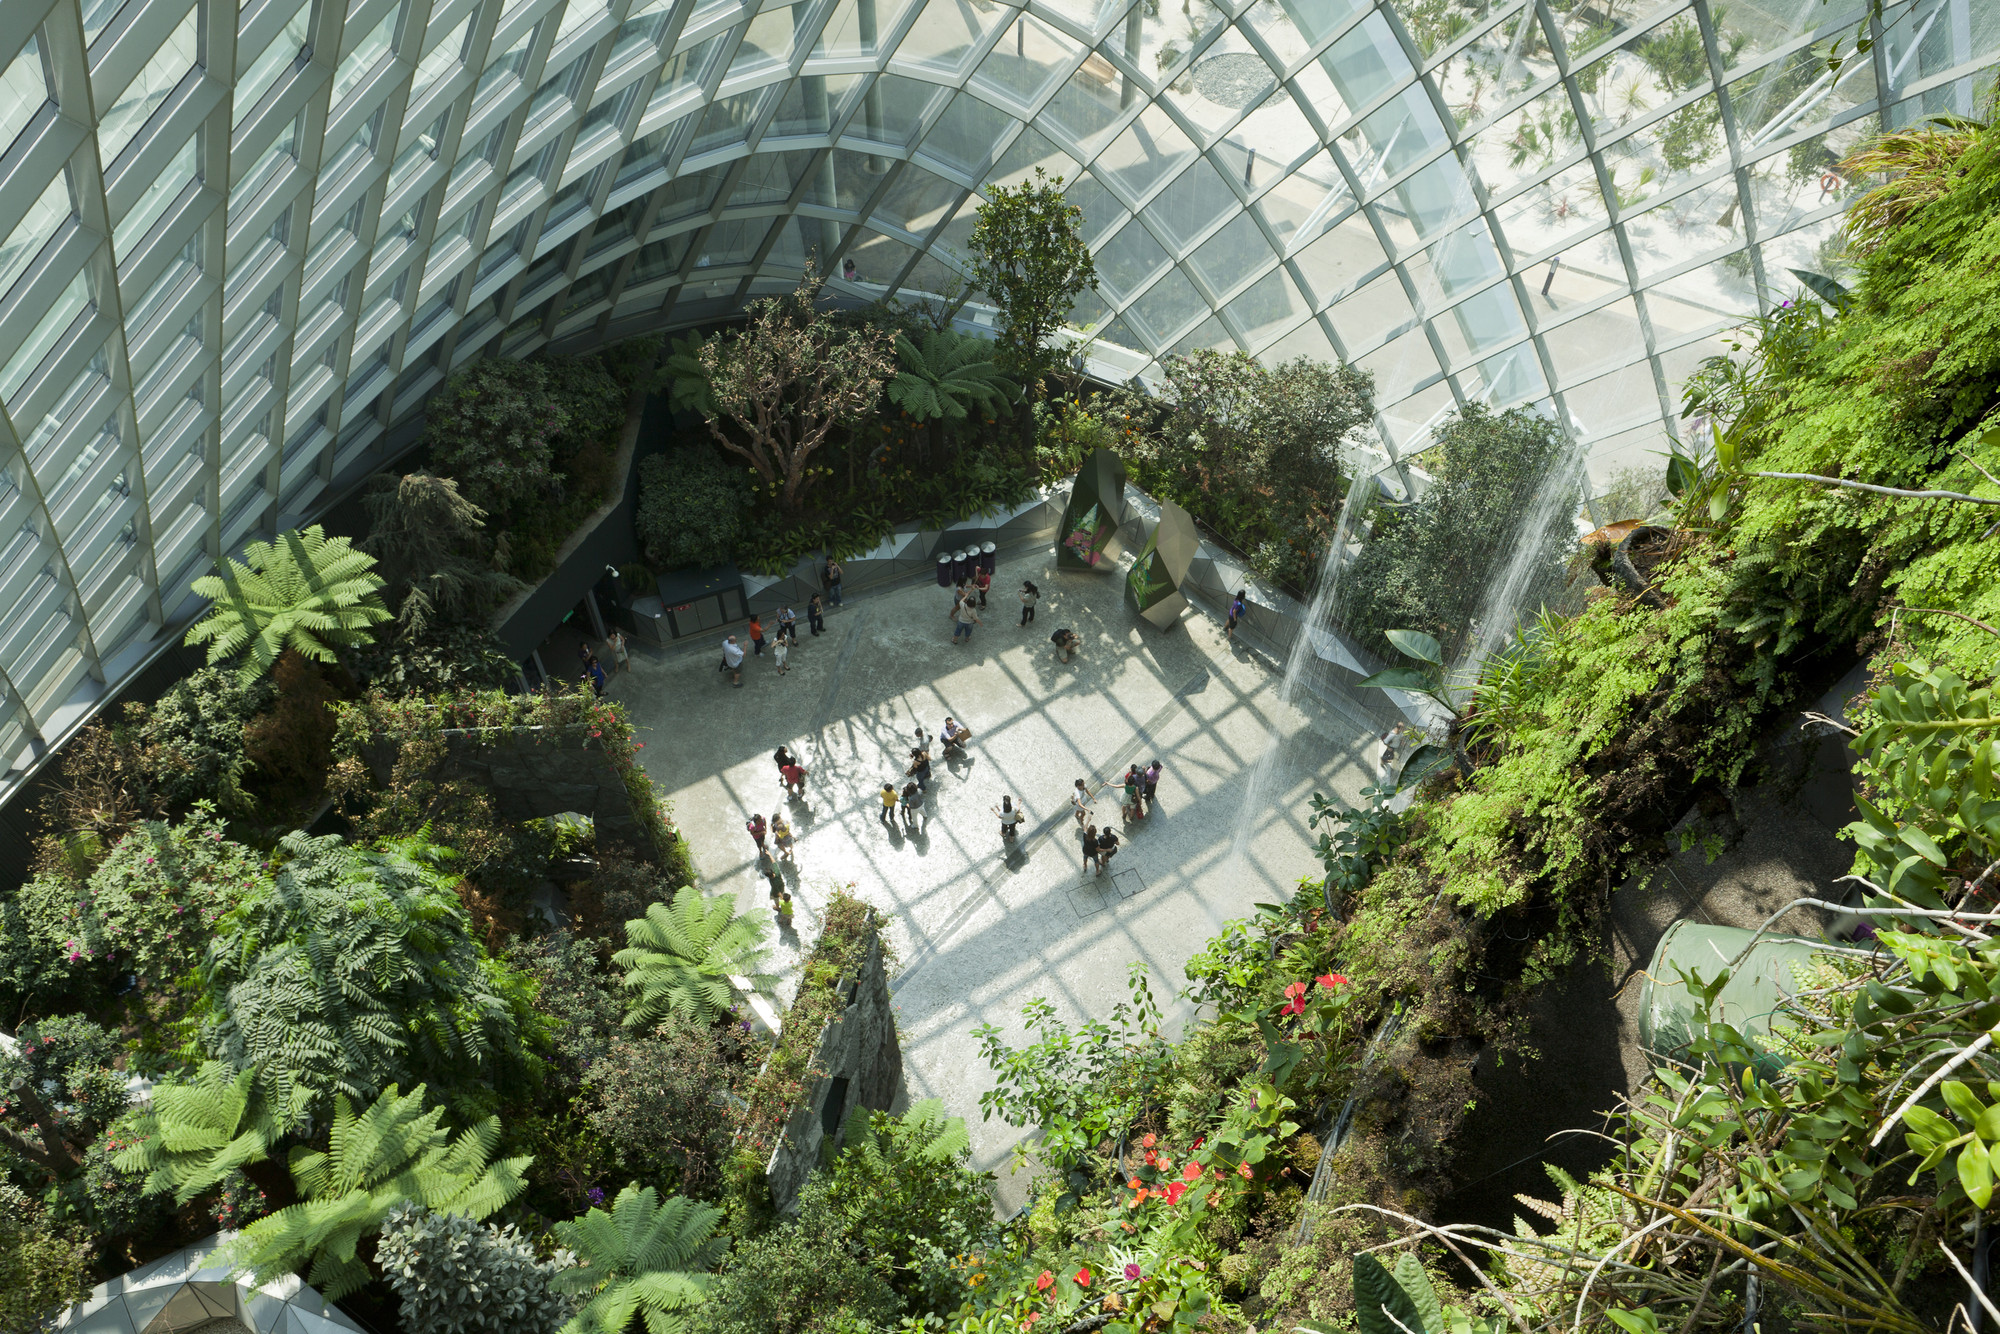 Cooled Conservatories, Gardens by the Bay / Courtesy of RIBA. Image © Craig Sheppard